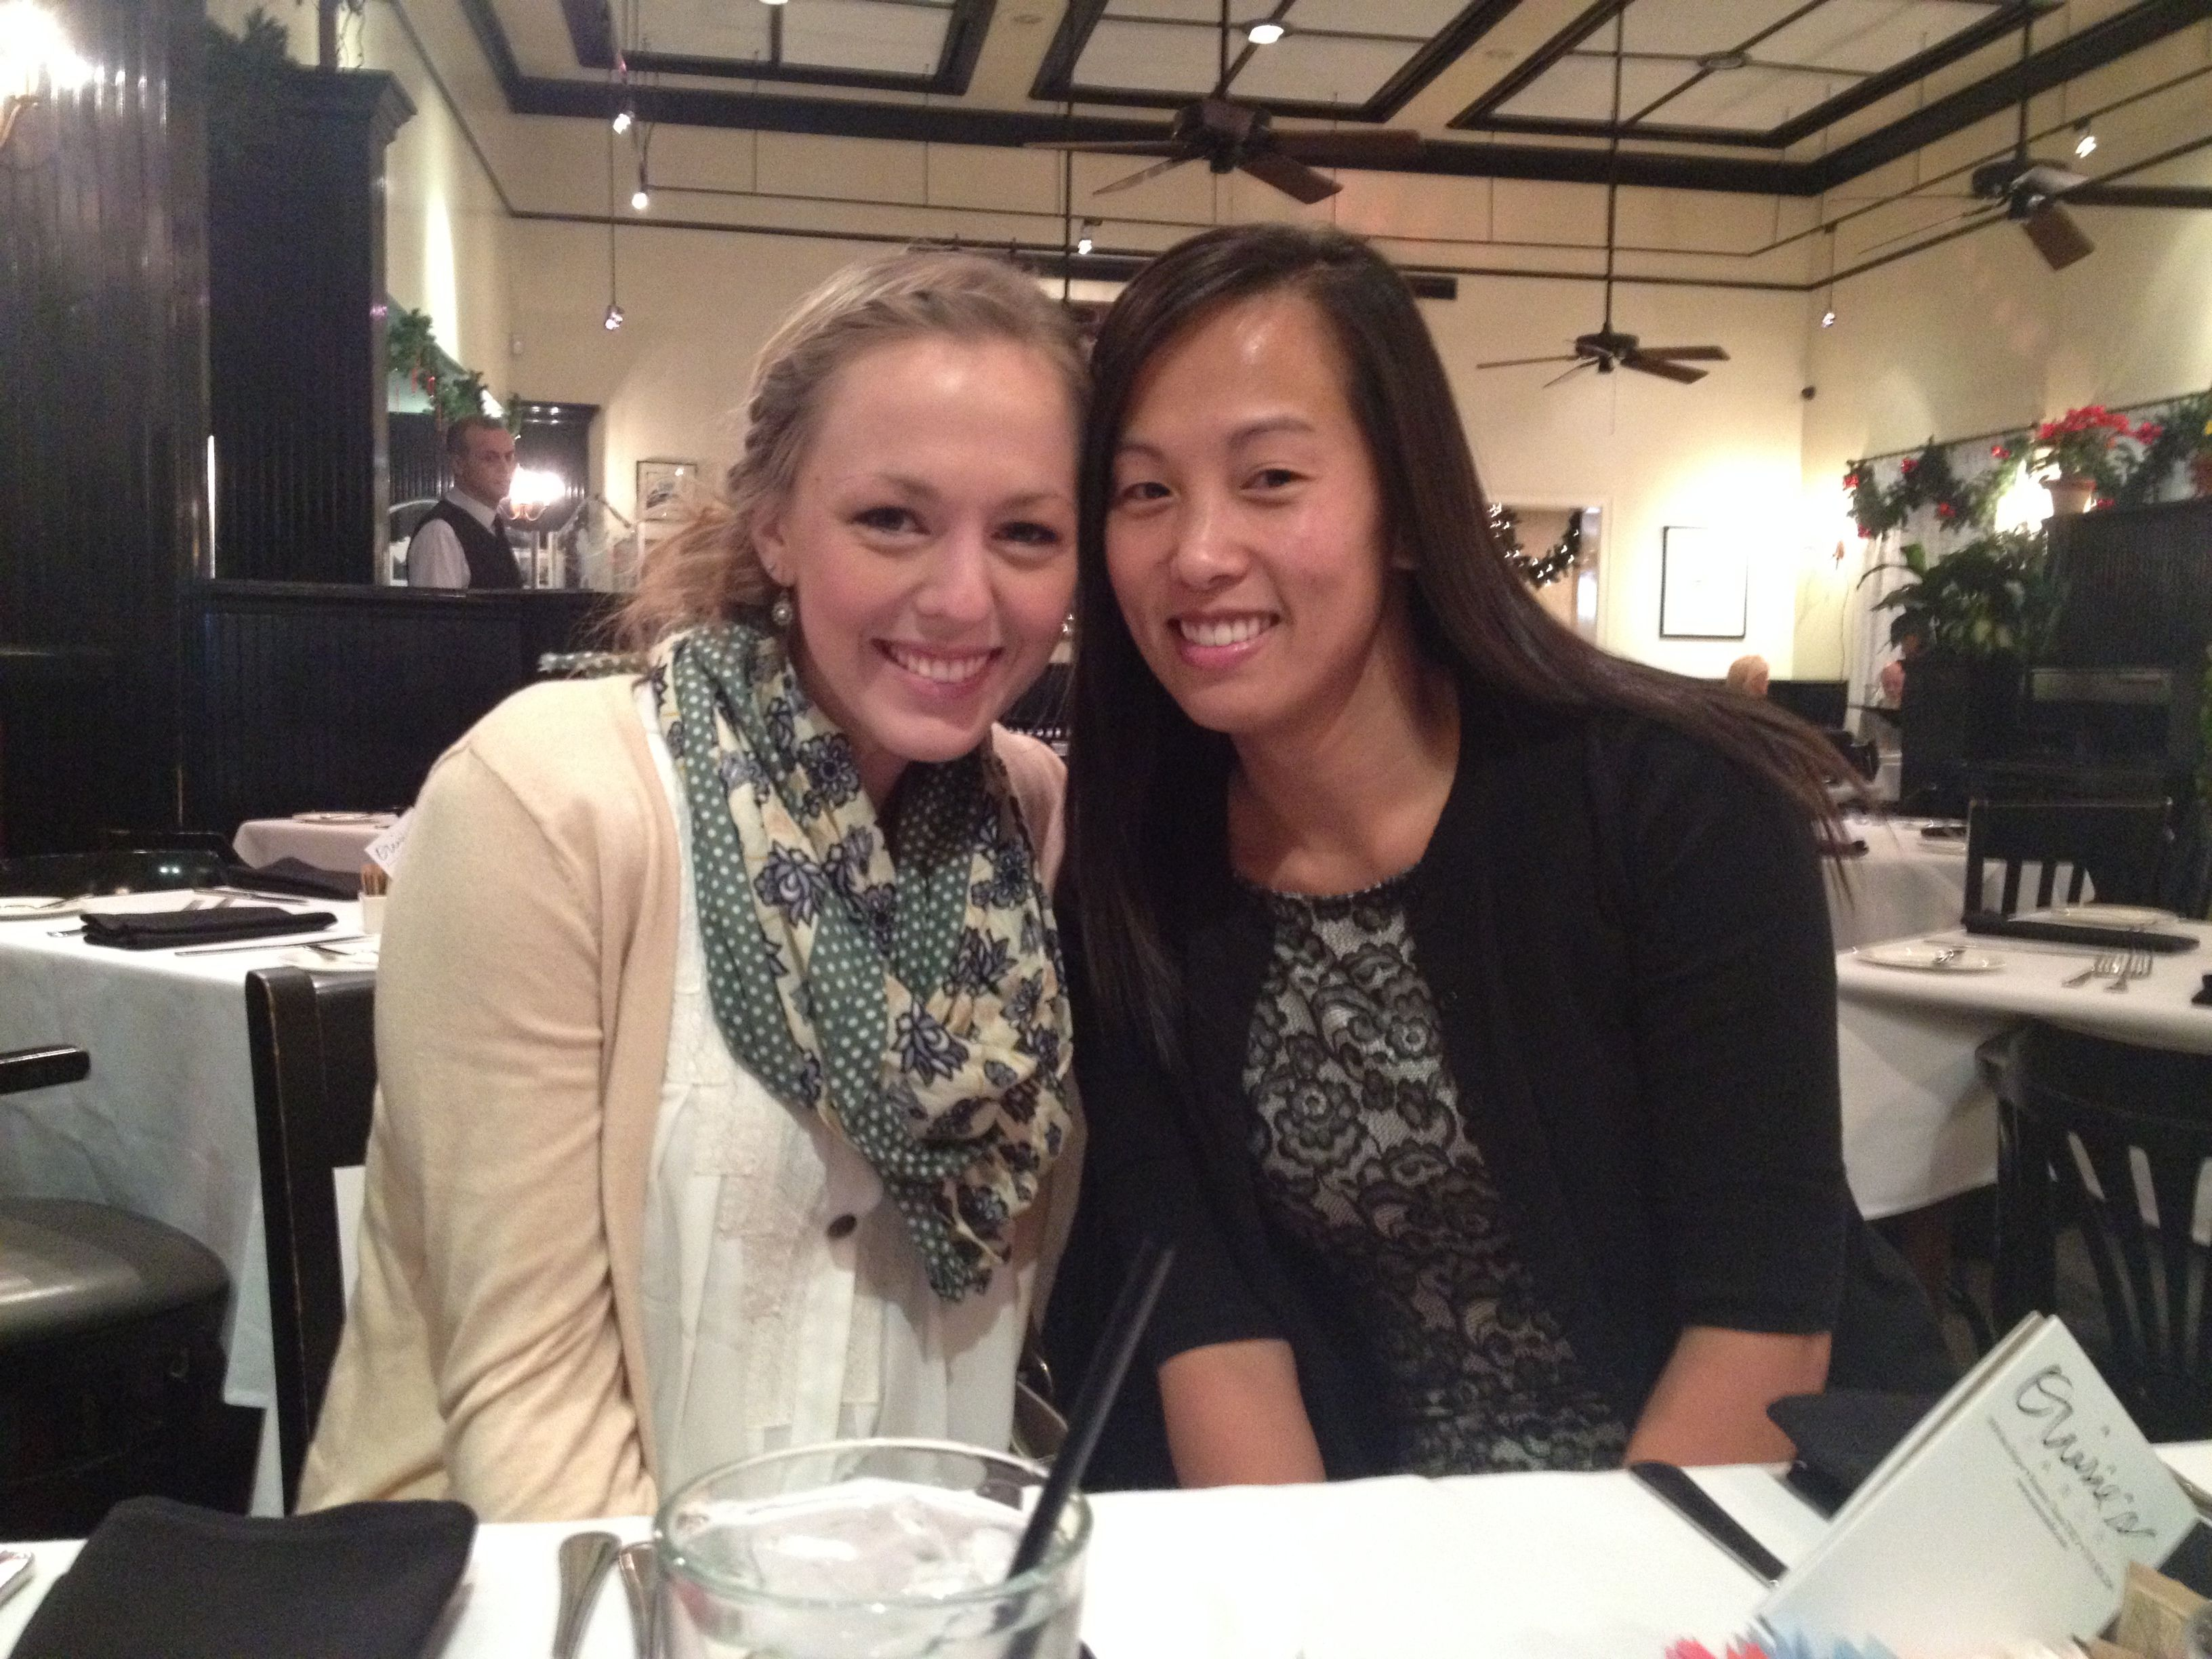 My-Hanh and Meaghan at Ouise's for our girls holiday brunch